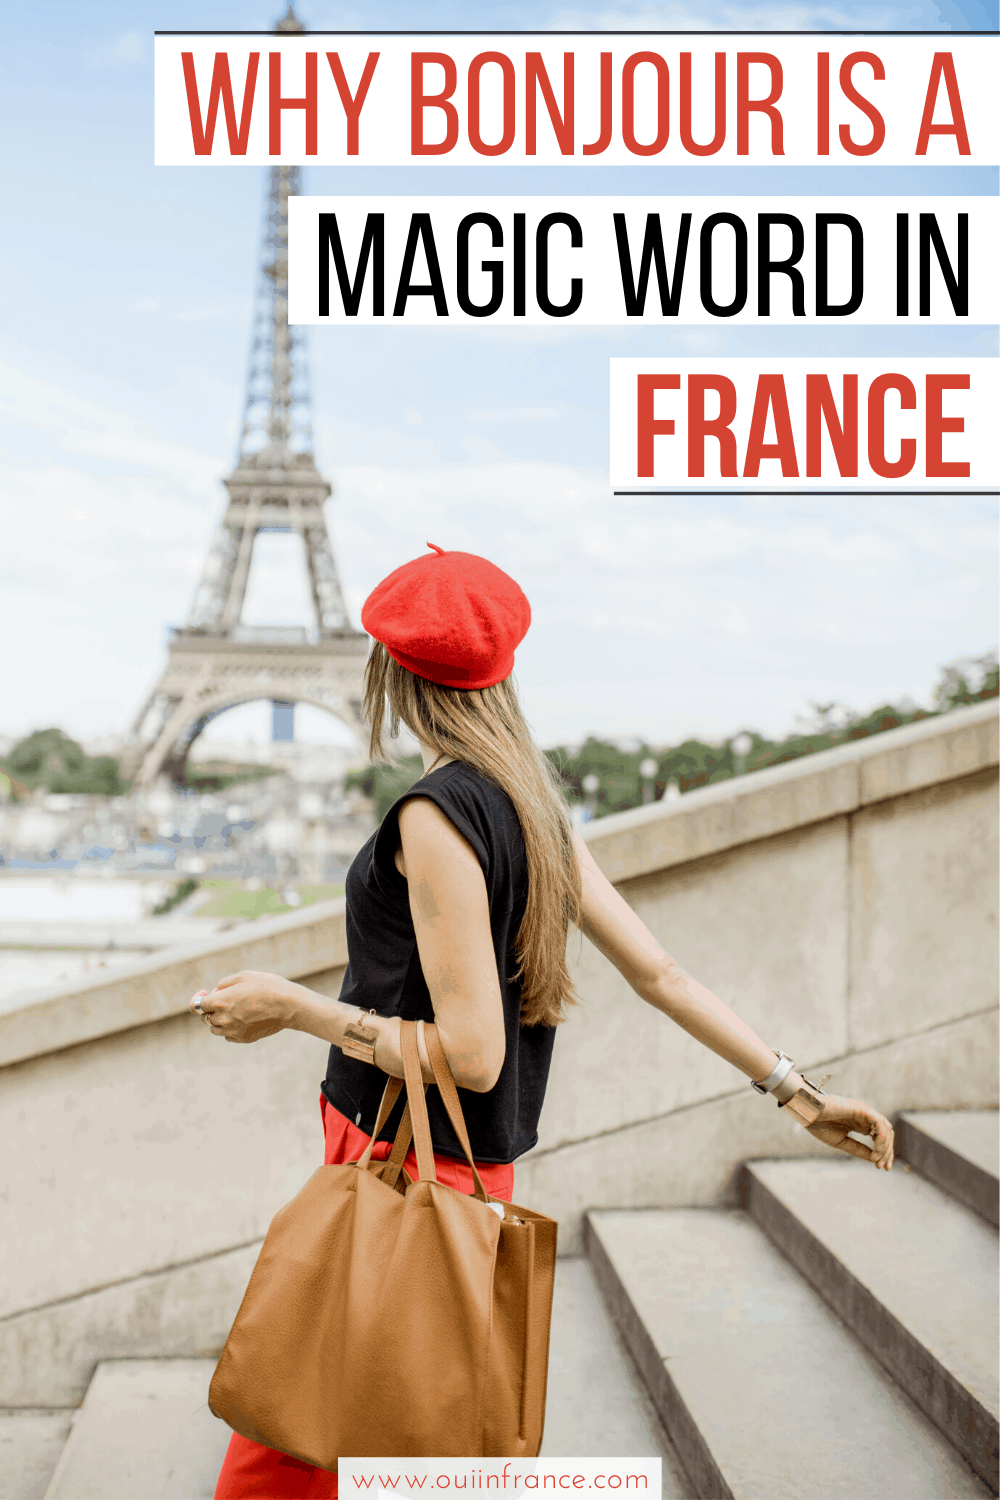 bonjour is the magic word in France